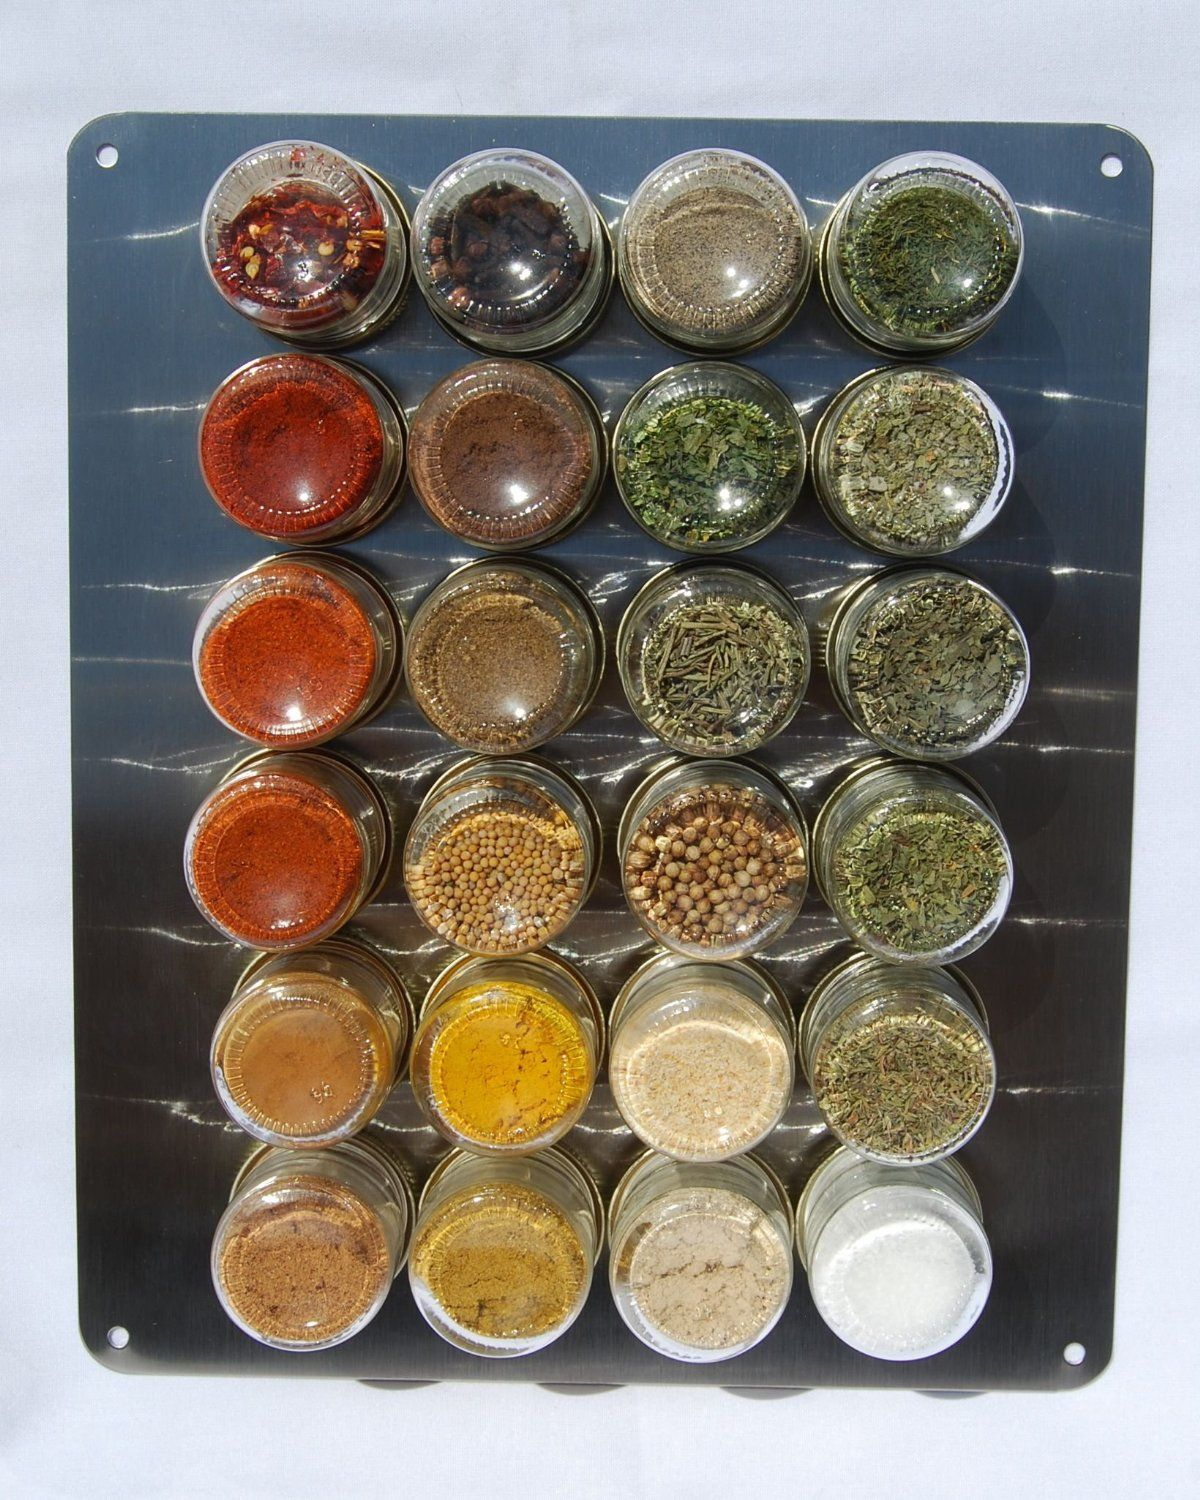 Organic Spice Rack Amazing Organic Magnetic Spice Rack With Spice Included Httpwwwamazonca Decorating Inspiration